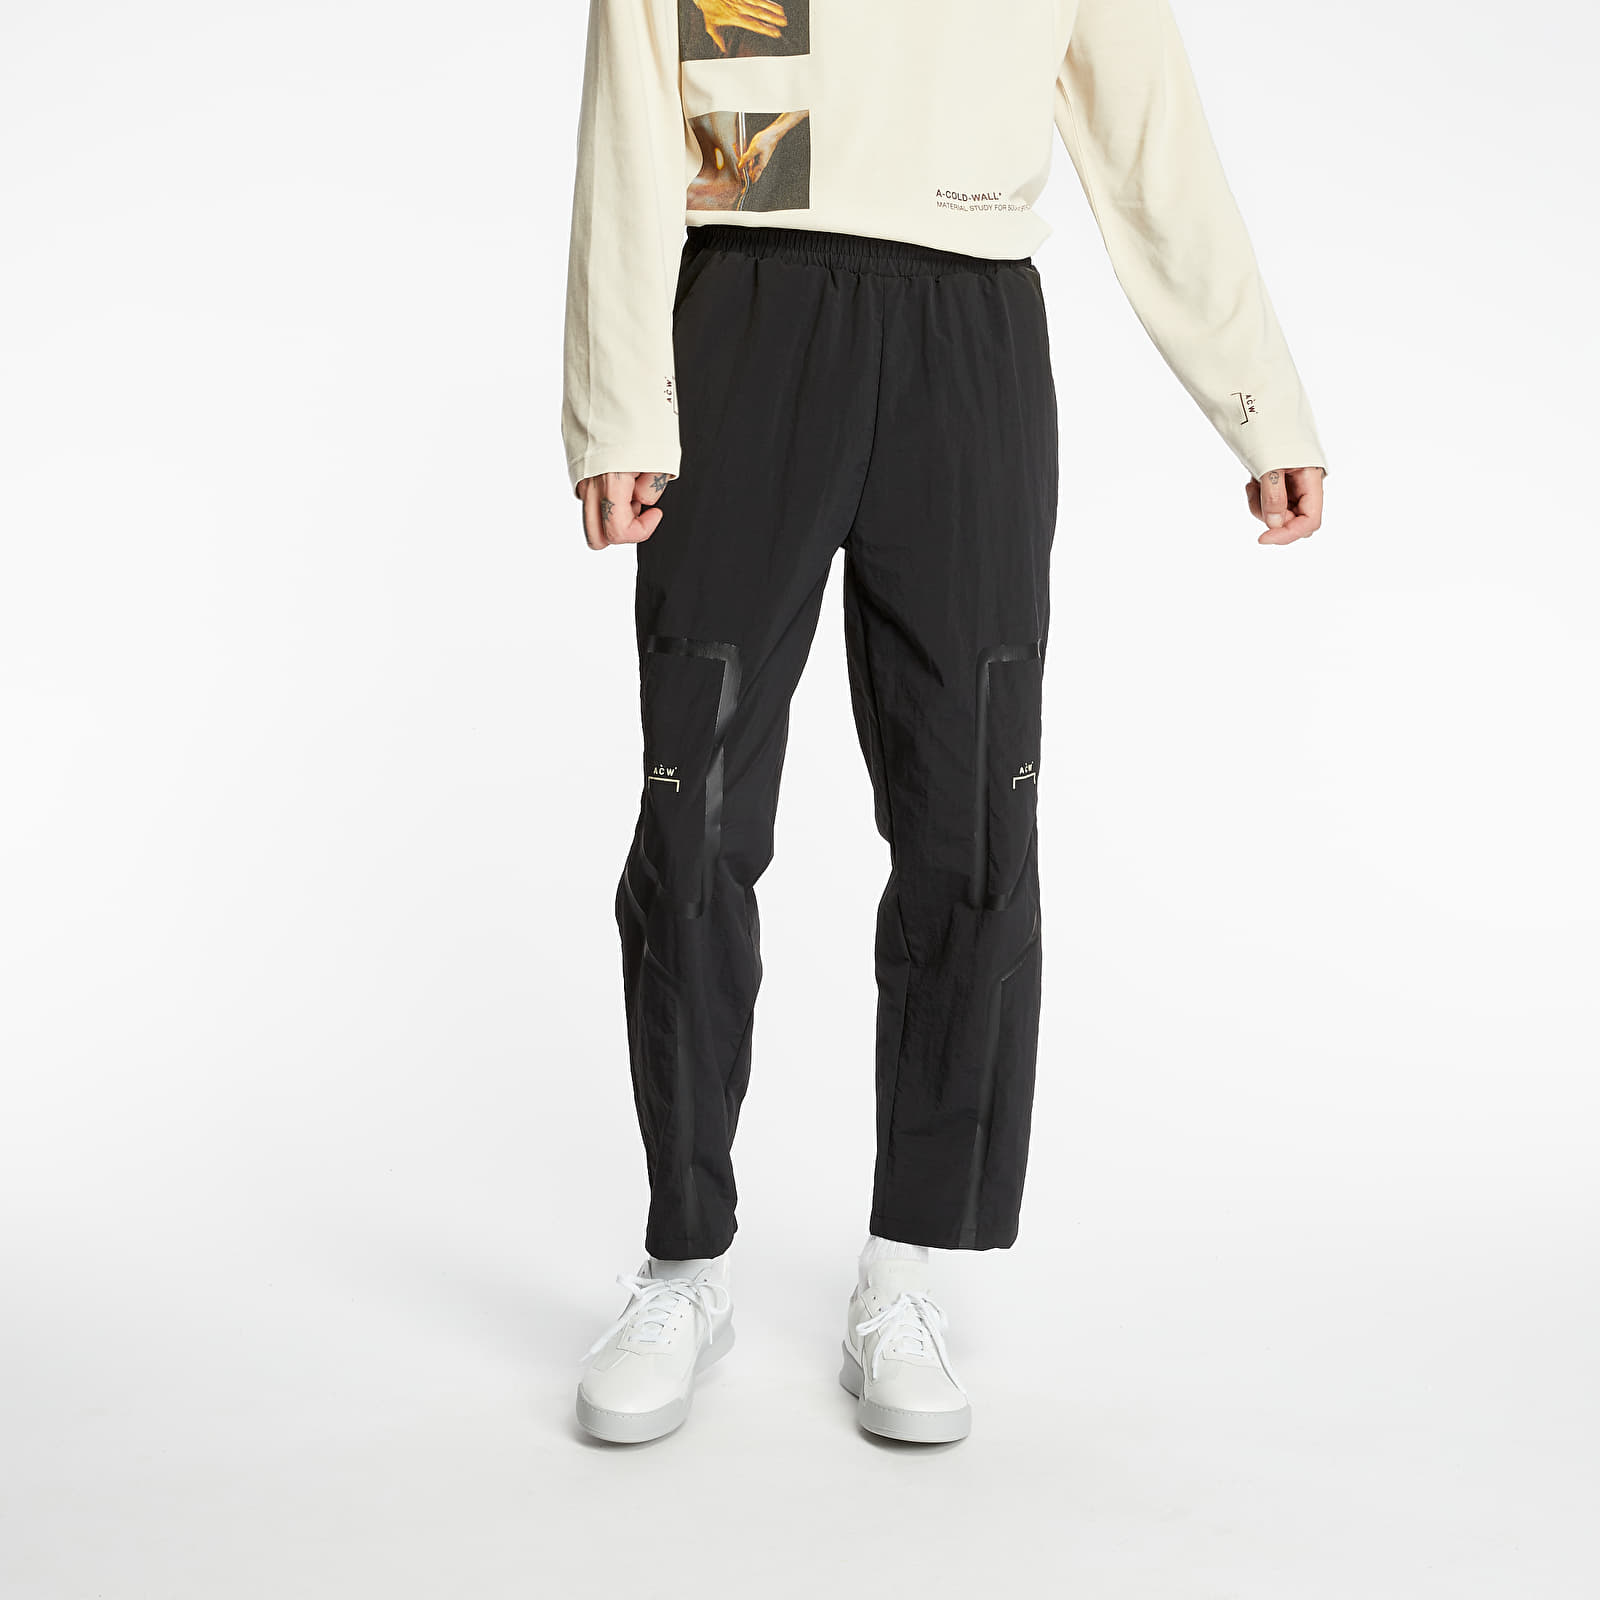 Pants and jeans A-COLD-WALL* Tonal Print Pants Black